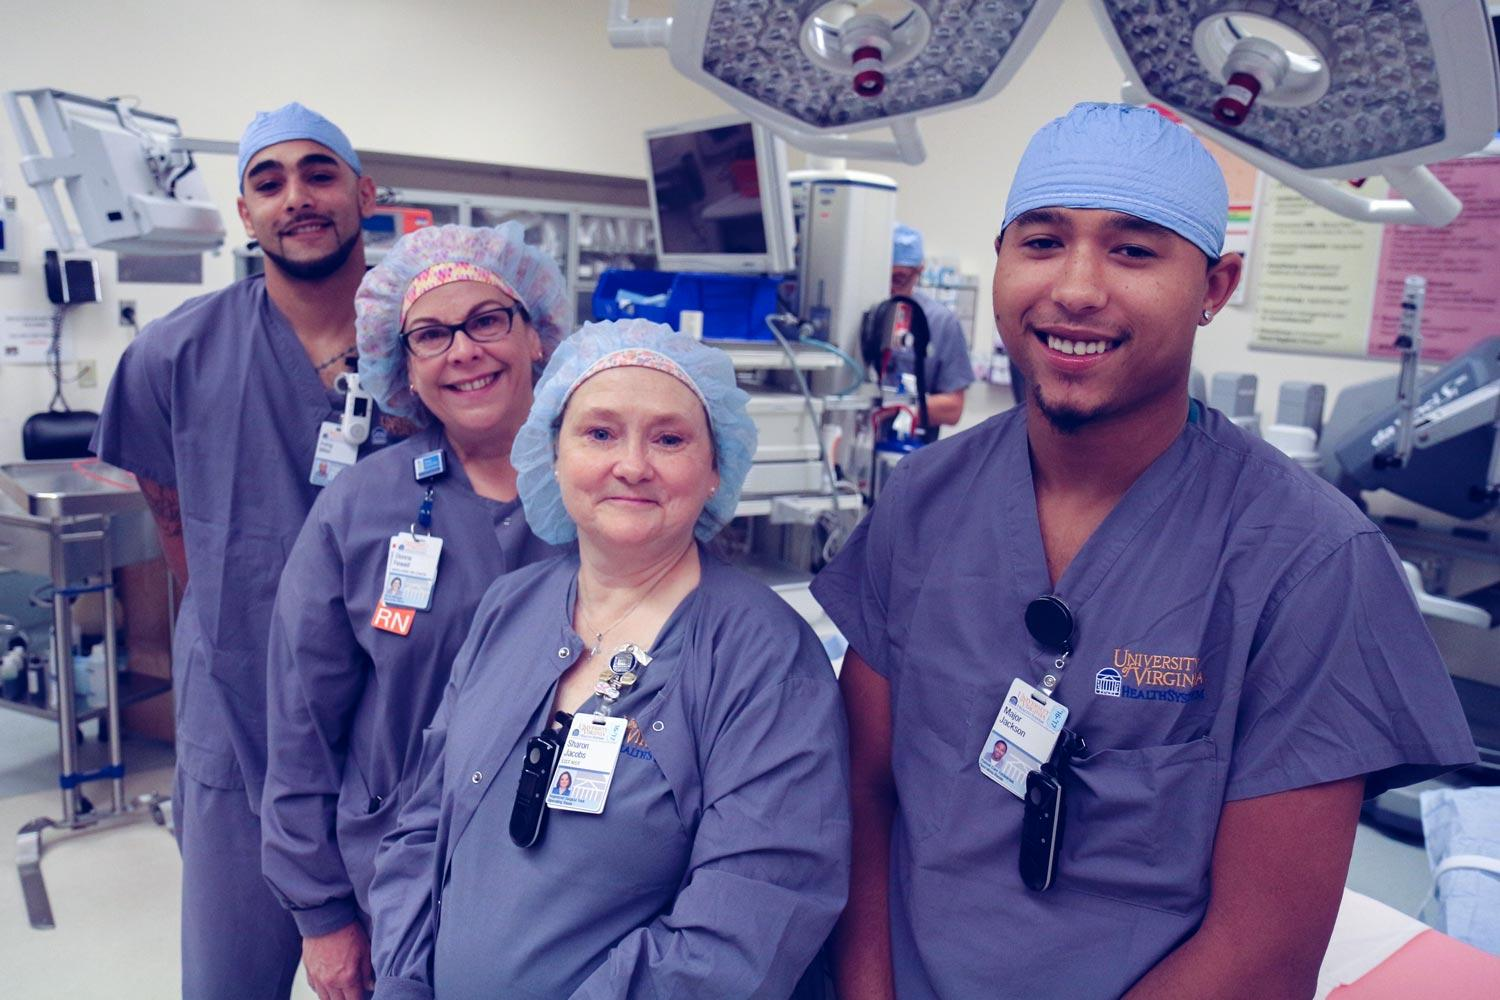 UVA conducts more than 30,000 surgeries each year. Teams like the one made up of Irving Miller, Donna Fewell, Sharon Jacobs and Major Jackson overhauled processes, halving the time it takes to prep rooms for surgeries.